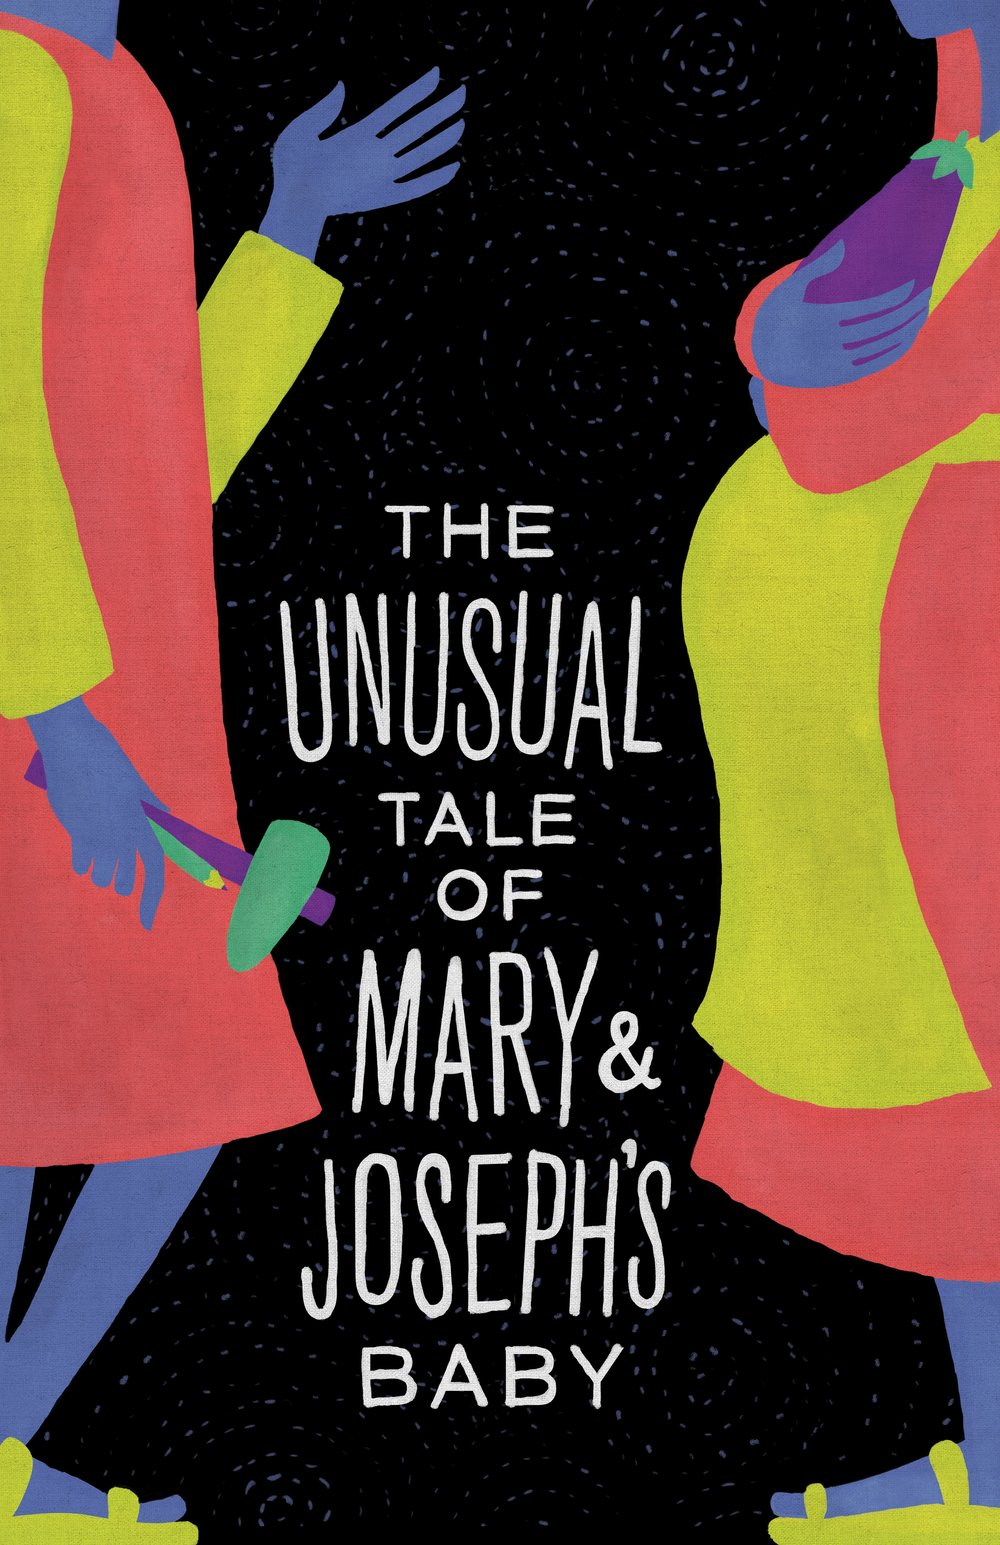 The Unusual Tale of Mary & Joseph's Baby